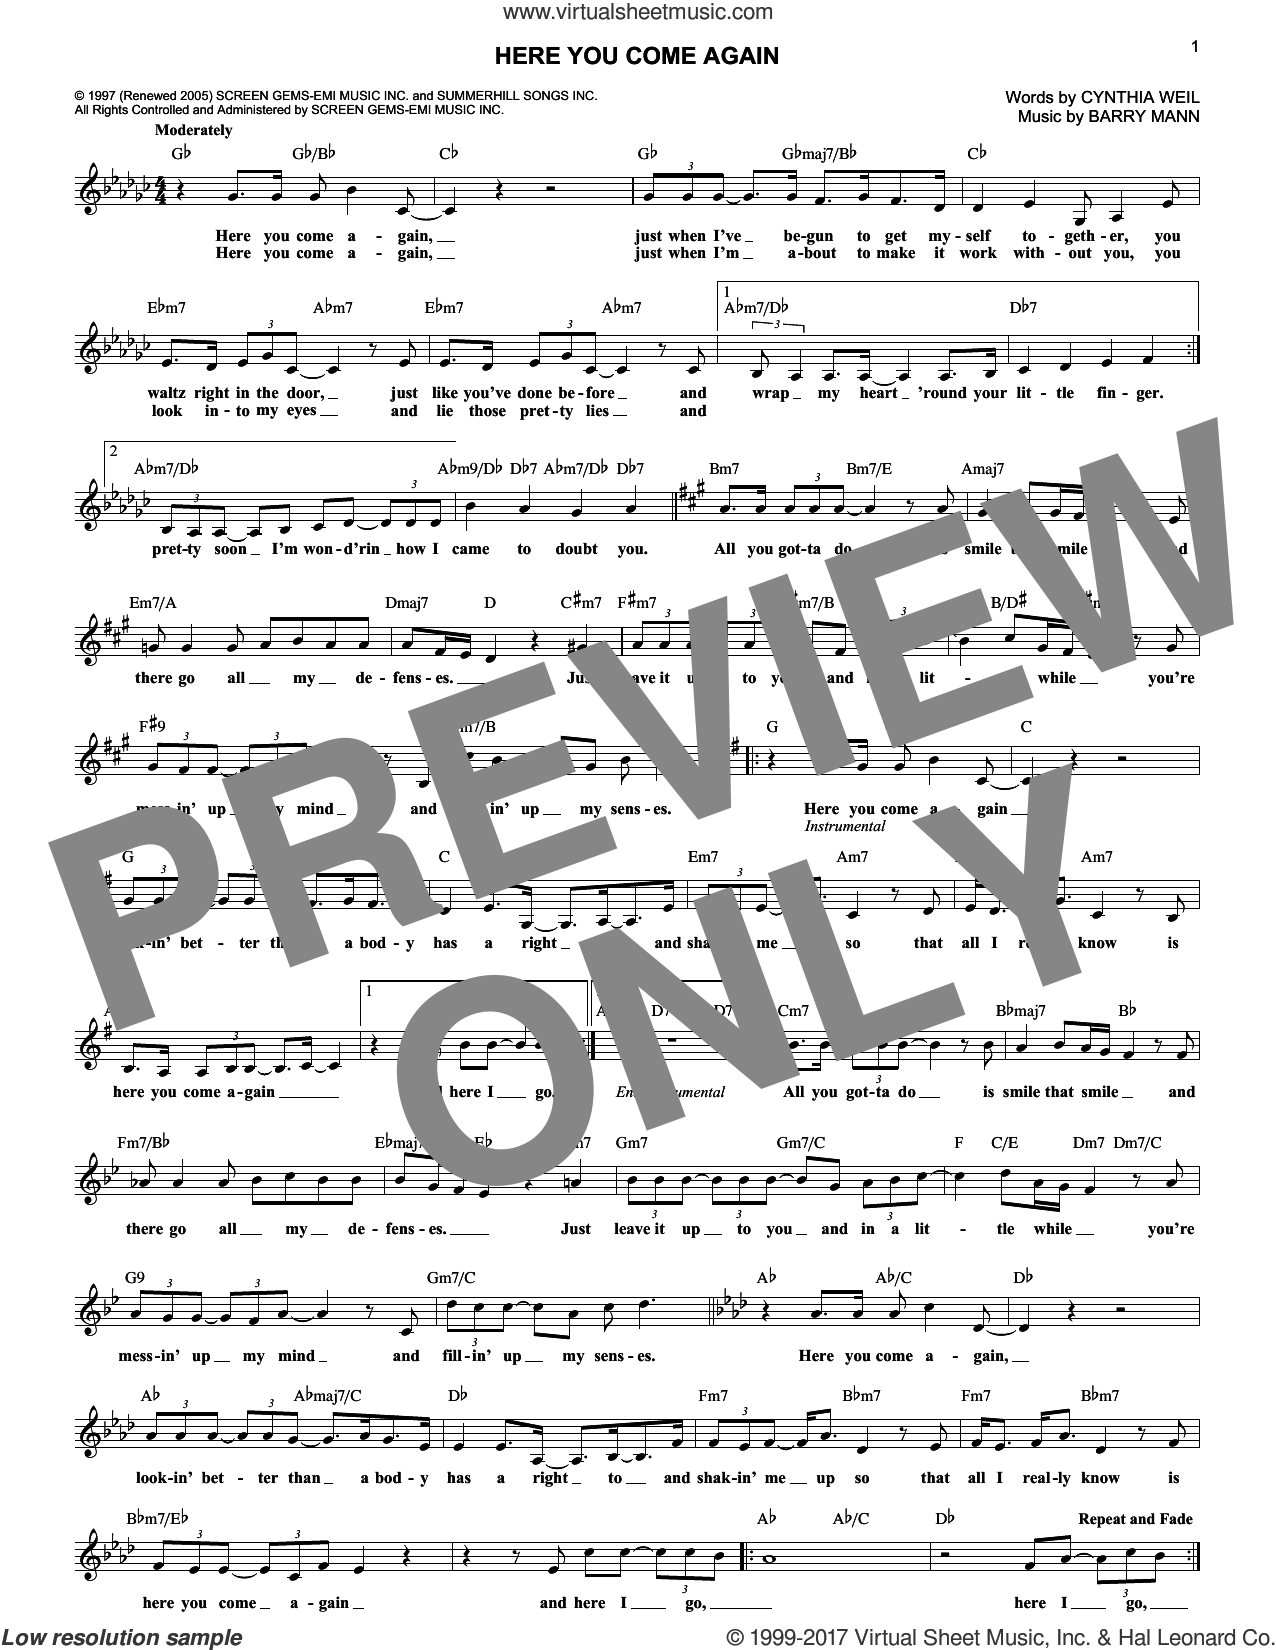 Here You Come Again sheet music for voice and other instruments (fake book) by Dolly Parton, Barry Mann and Cynthia Weil, intermediate skill level